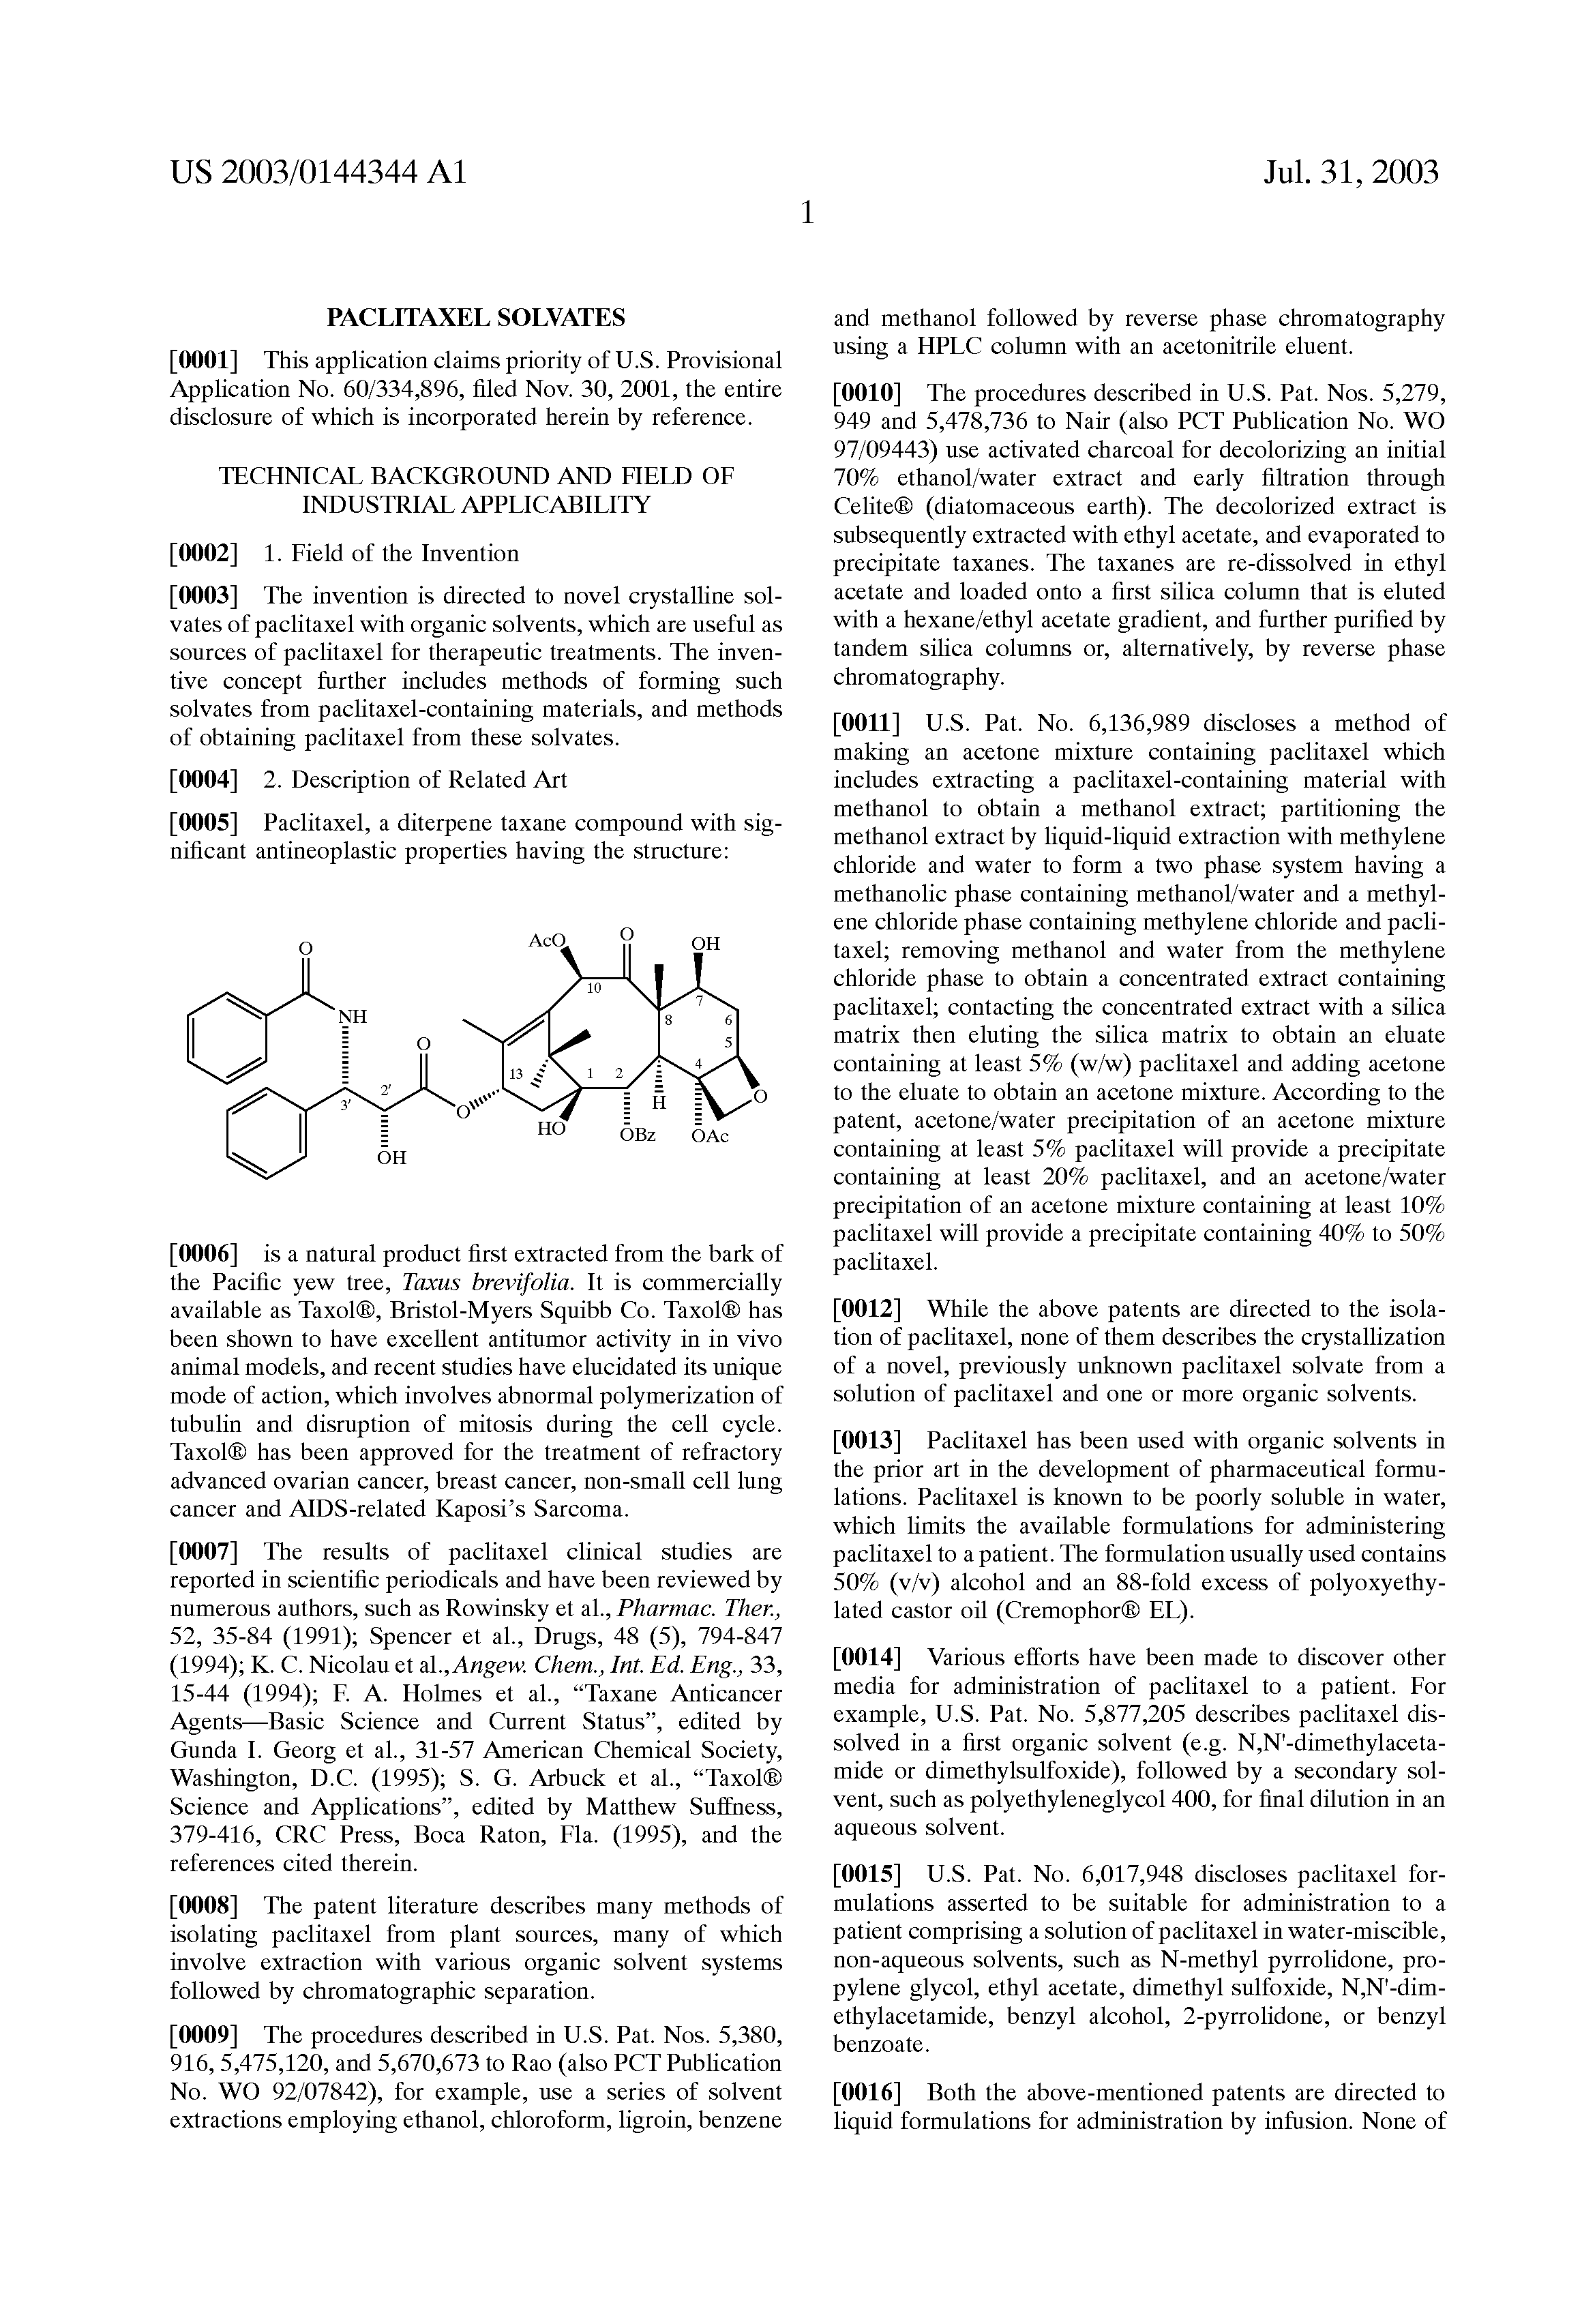 US 2003/0144344 A1 - Paclitaxel Solvates - The Lens - Free